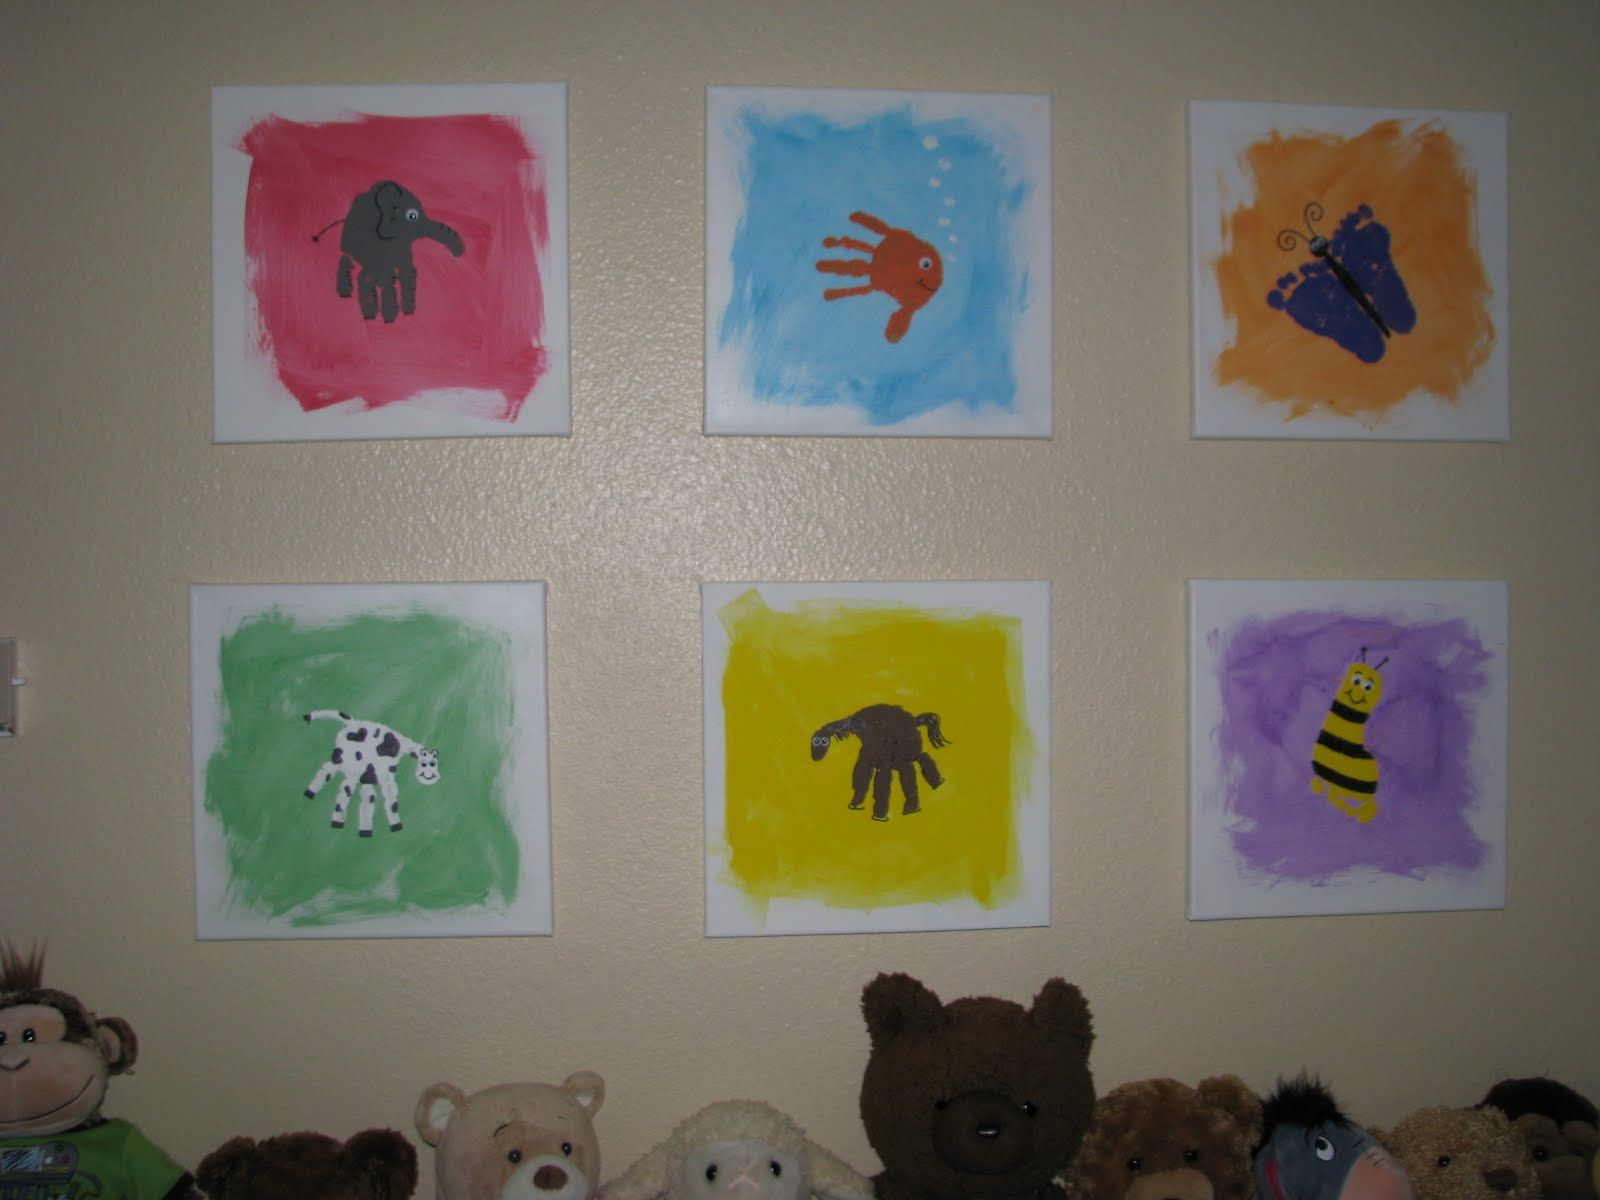 Arts And Crafts Ideas For Christmas Gifts Part - 39: Cute Art Made With Hand And Foot Prints!! Great For Christmas Gift For  Grandparents